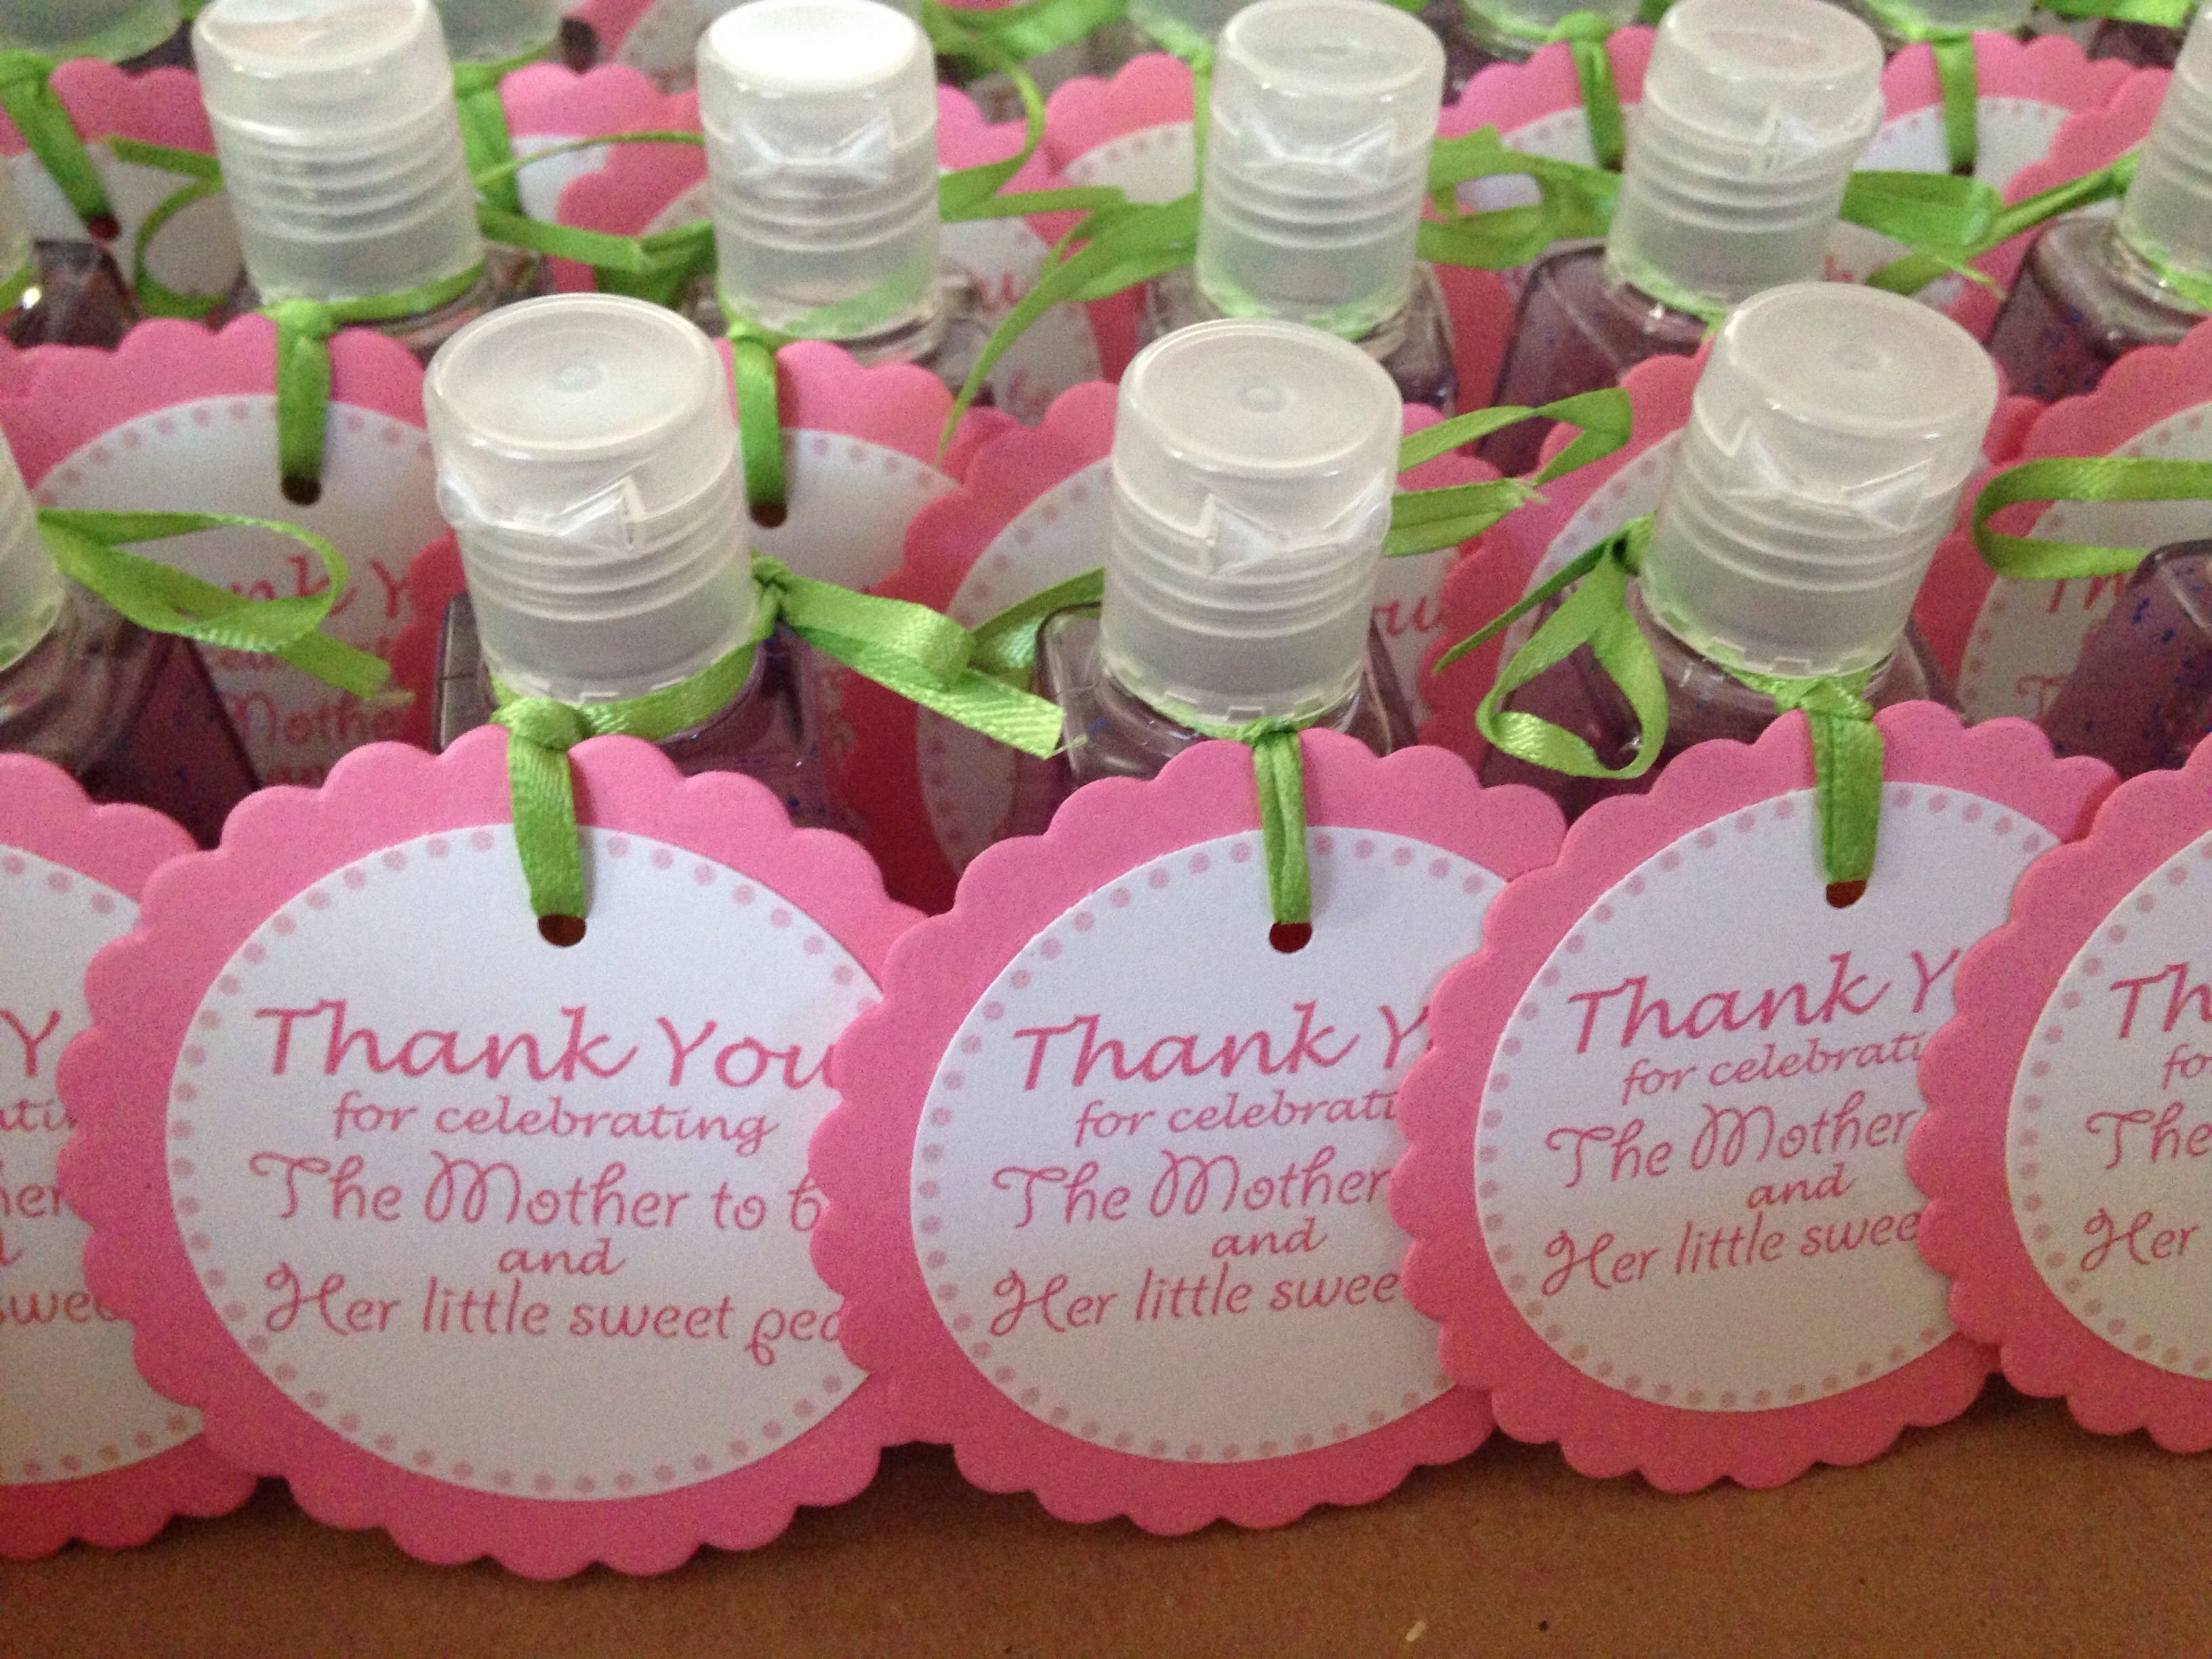 10 Fabulous Baby Shower Favor Ideas Girl baby girl shower favors sweet pea sanitizers from bathbody works 1 2020